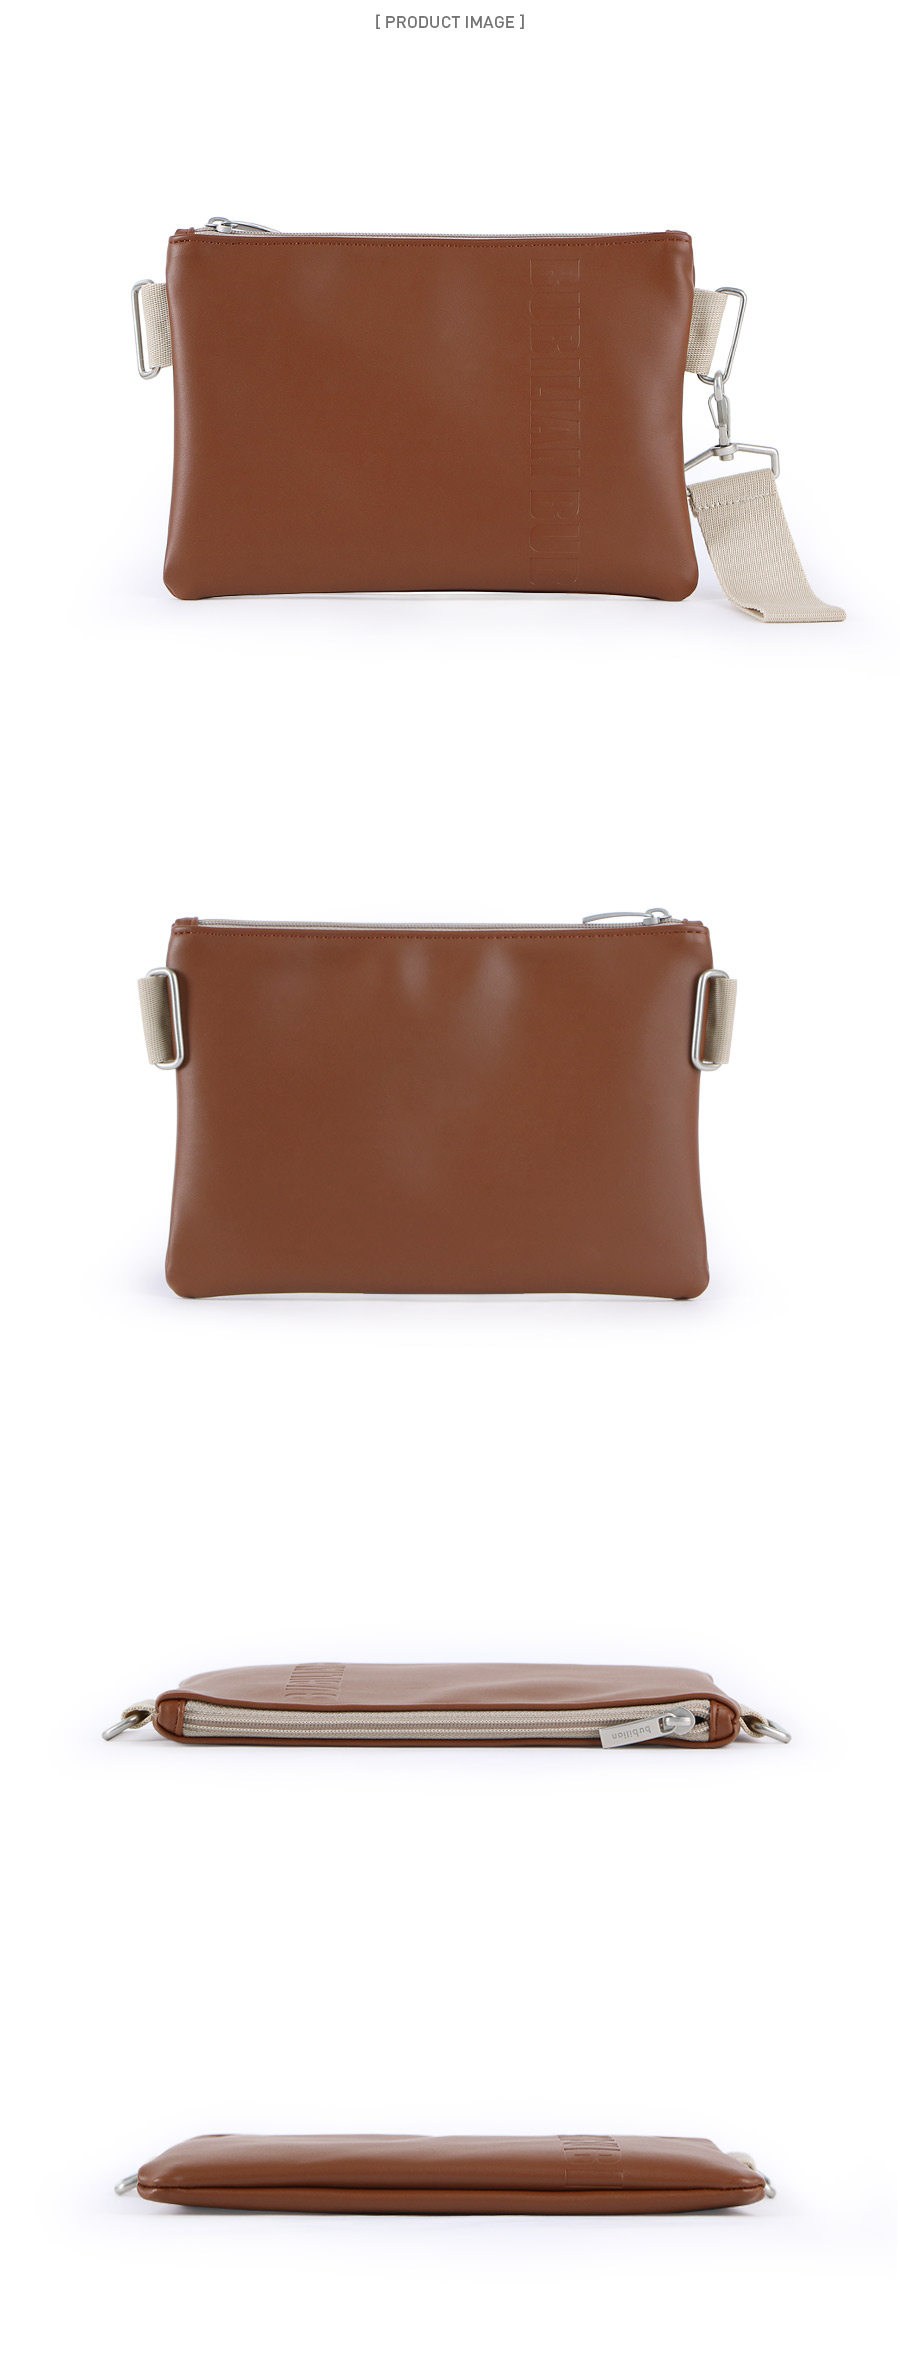 [버빌리안] Bubilian Strap Leather Clutch _ [BROWN]